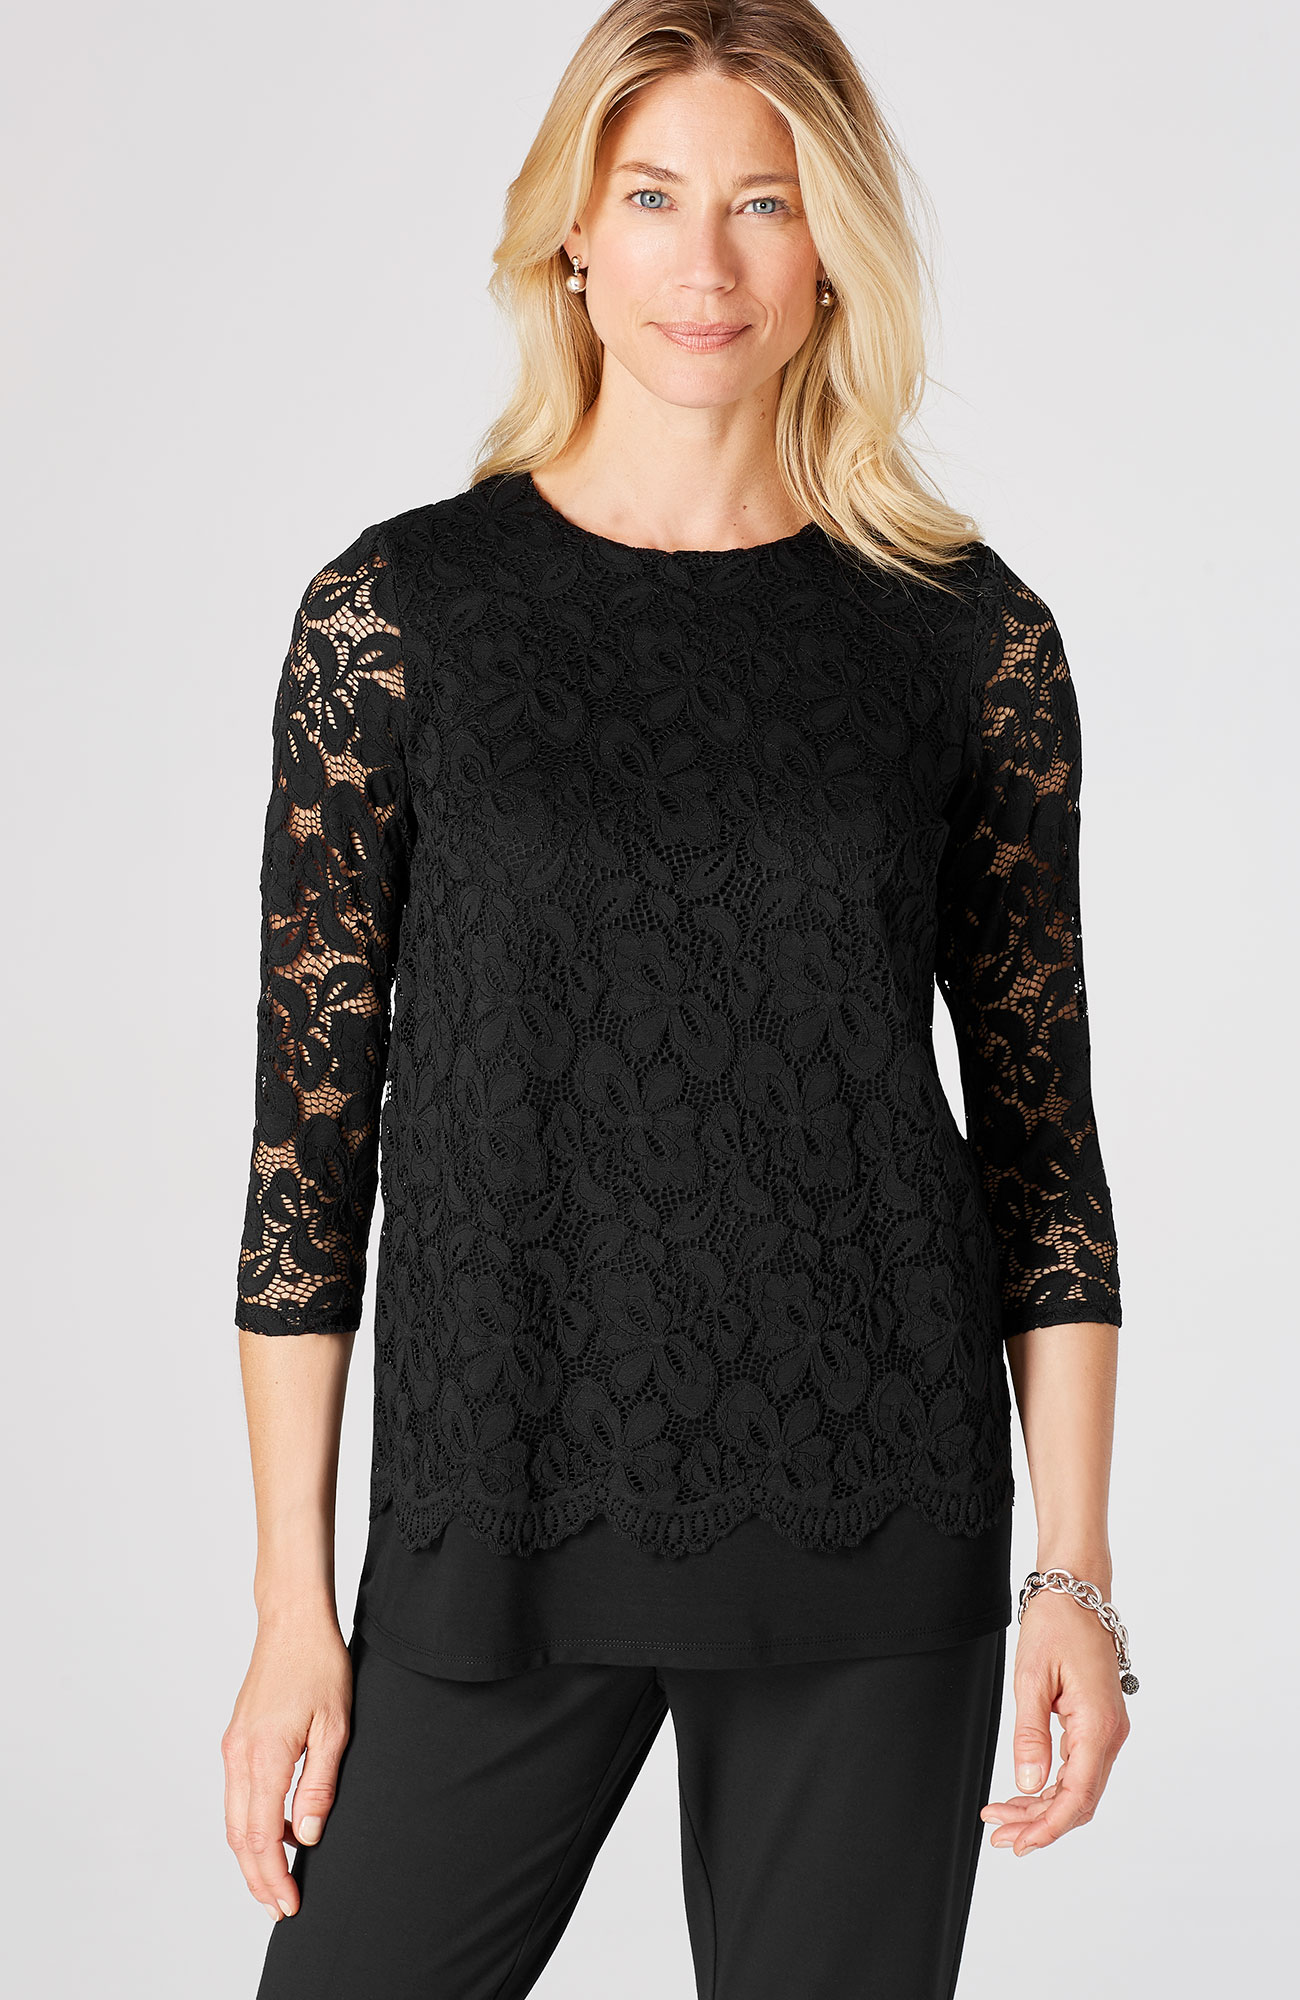 Wearever lace top